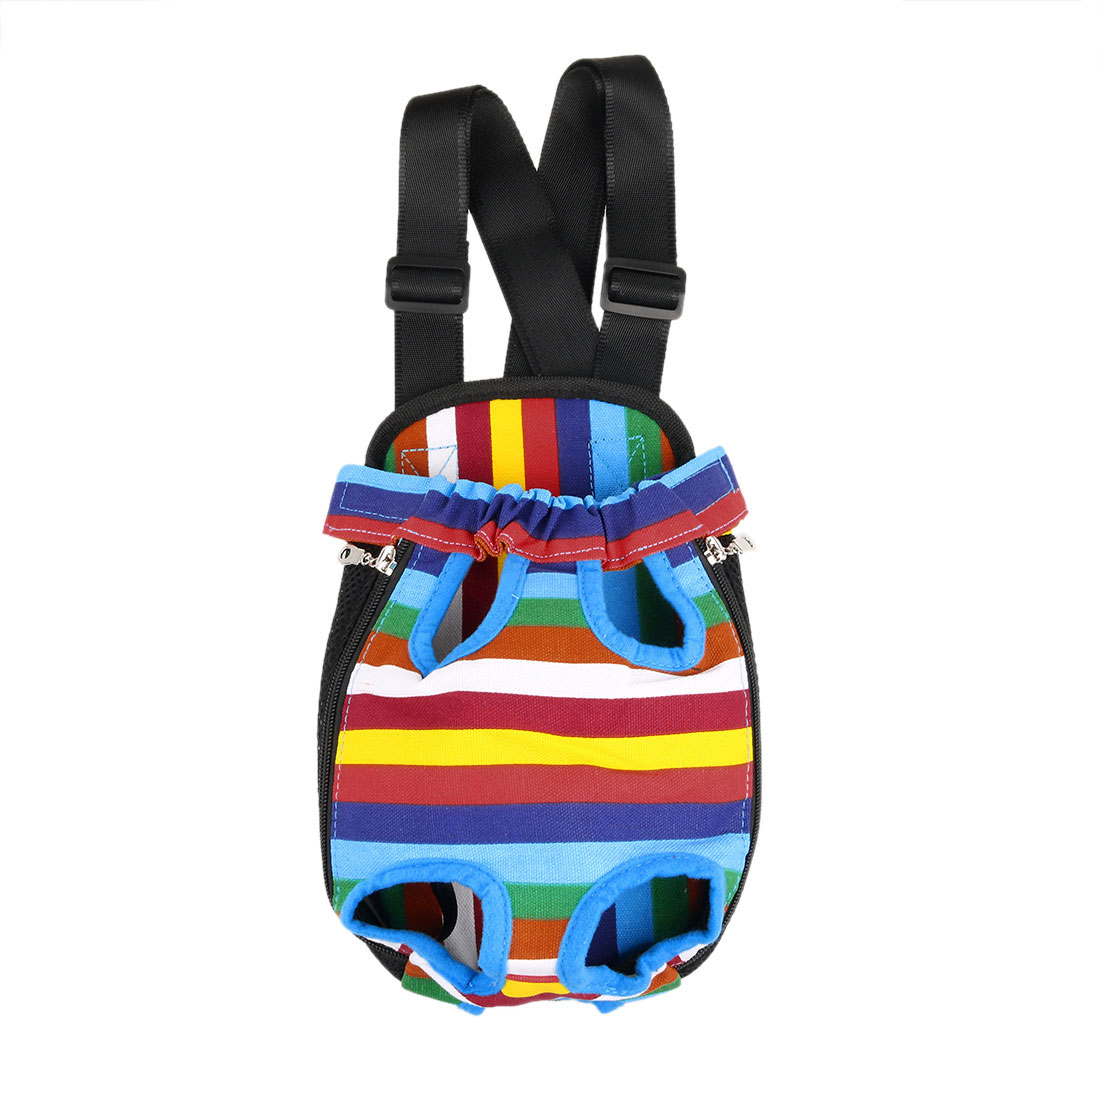 Travel Canvas Legs Out Dog Cat Pet Carrier Bag Case Backpack Totes Colorful 32 x 20cm